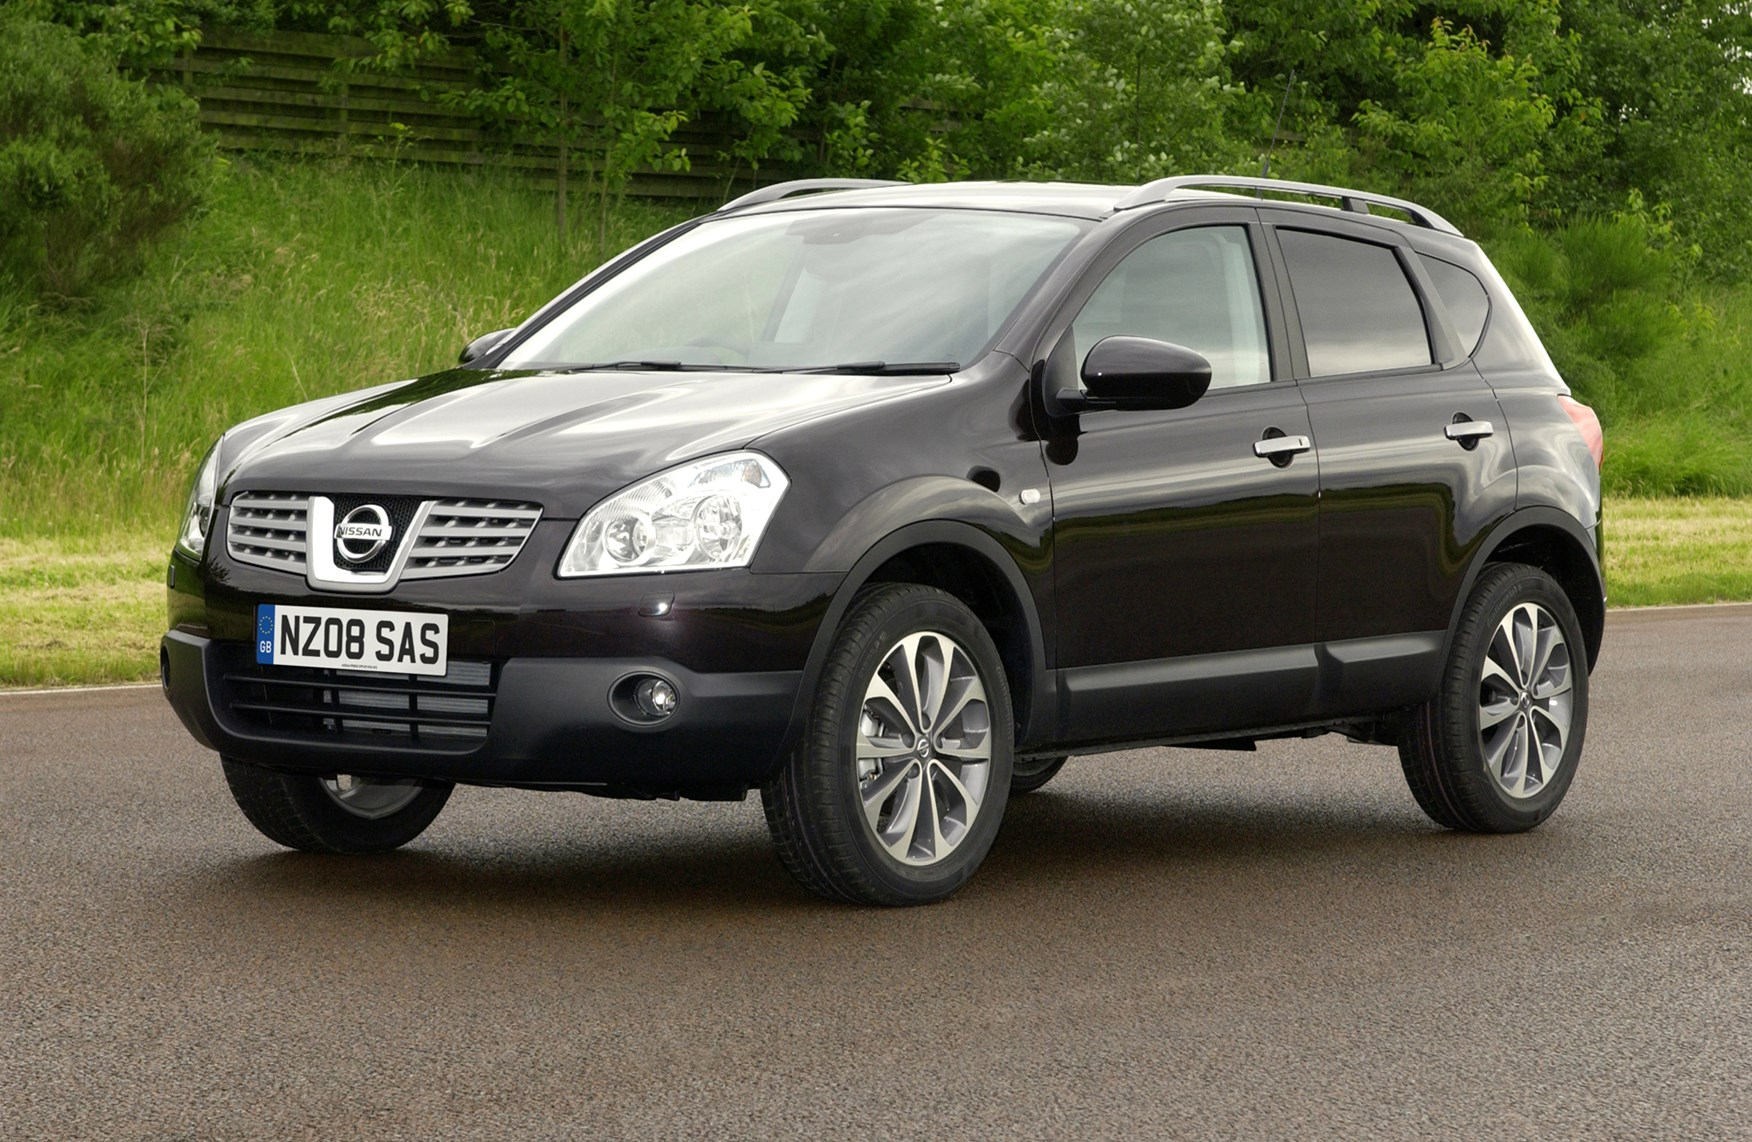 nissan qashqai station wagon review 2007 2013 parkers. Black Bedroom Furniture Sets. Home Design Ideas